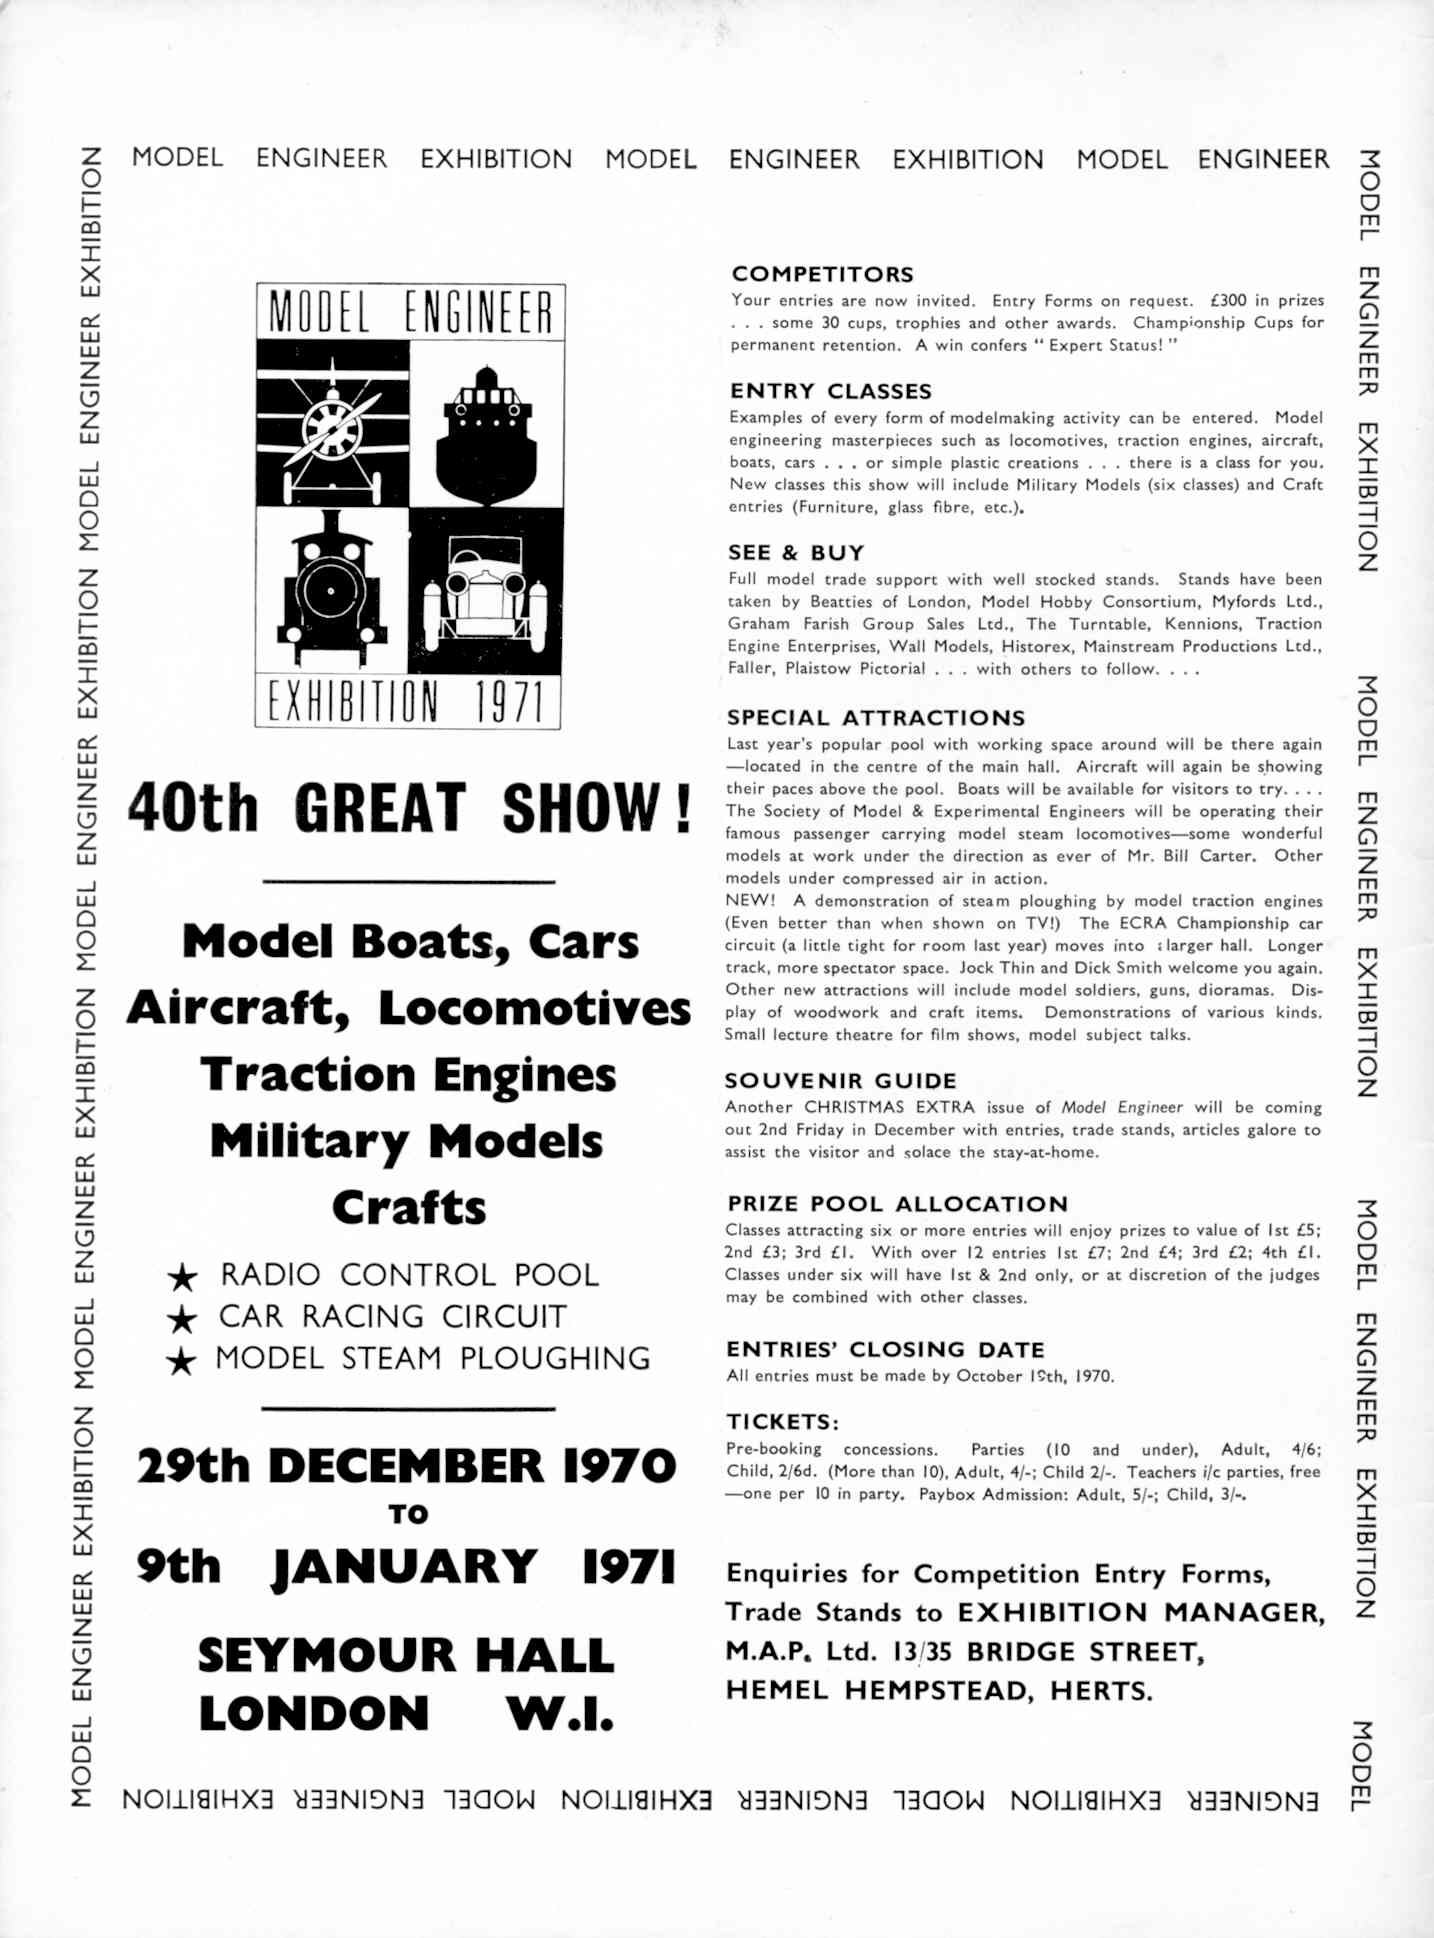 UK Meccano Magazine October 1970 Page 526